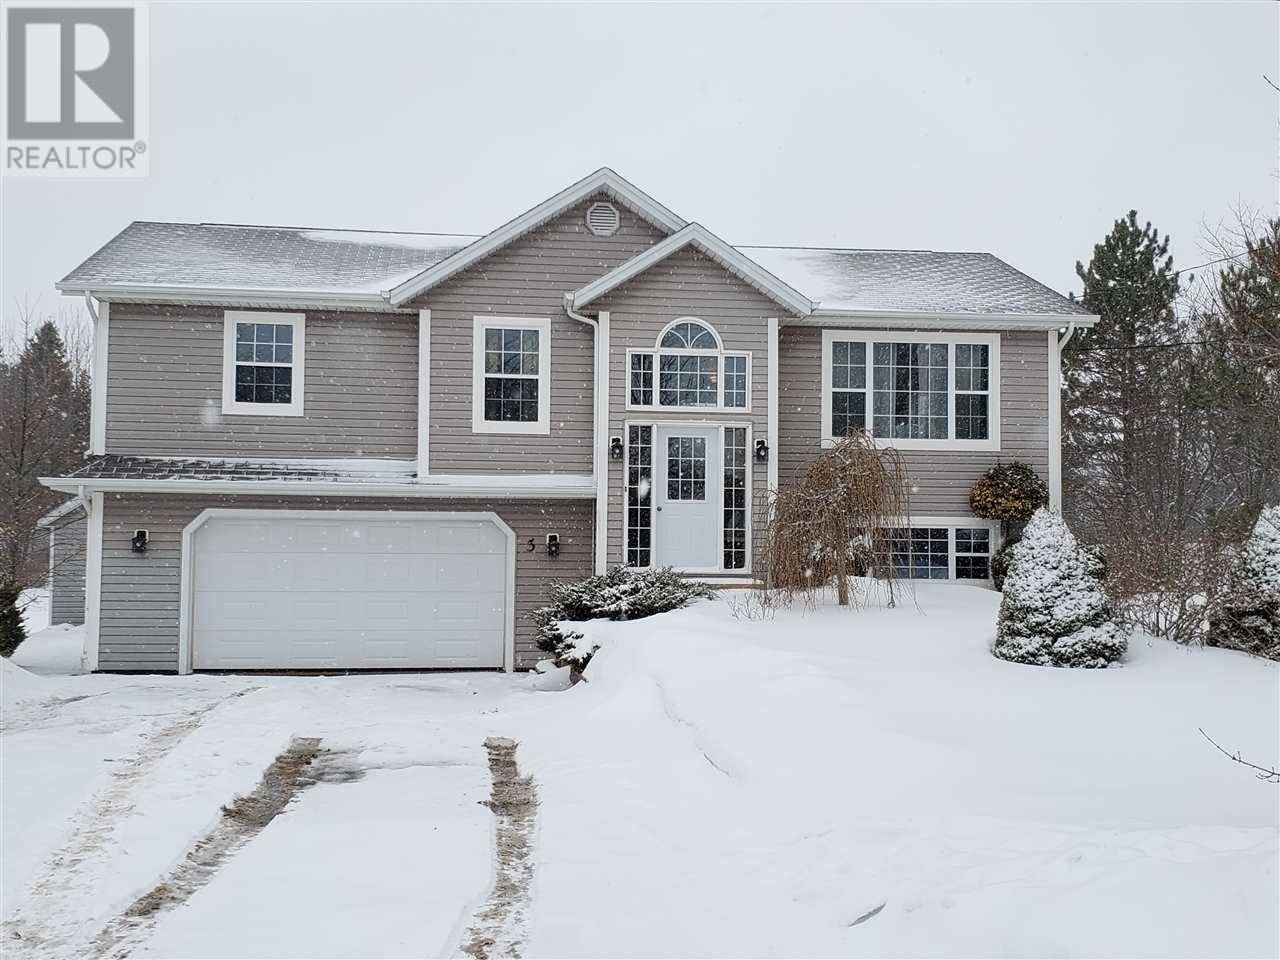 House for sale at 3 Trailview Dr Charlottetown Prince Edward Island - MLS: 202002508